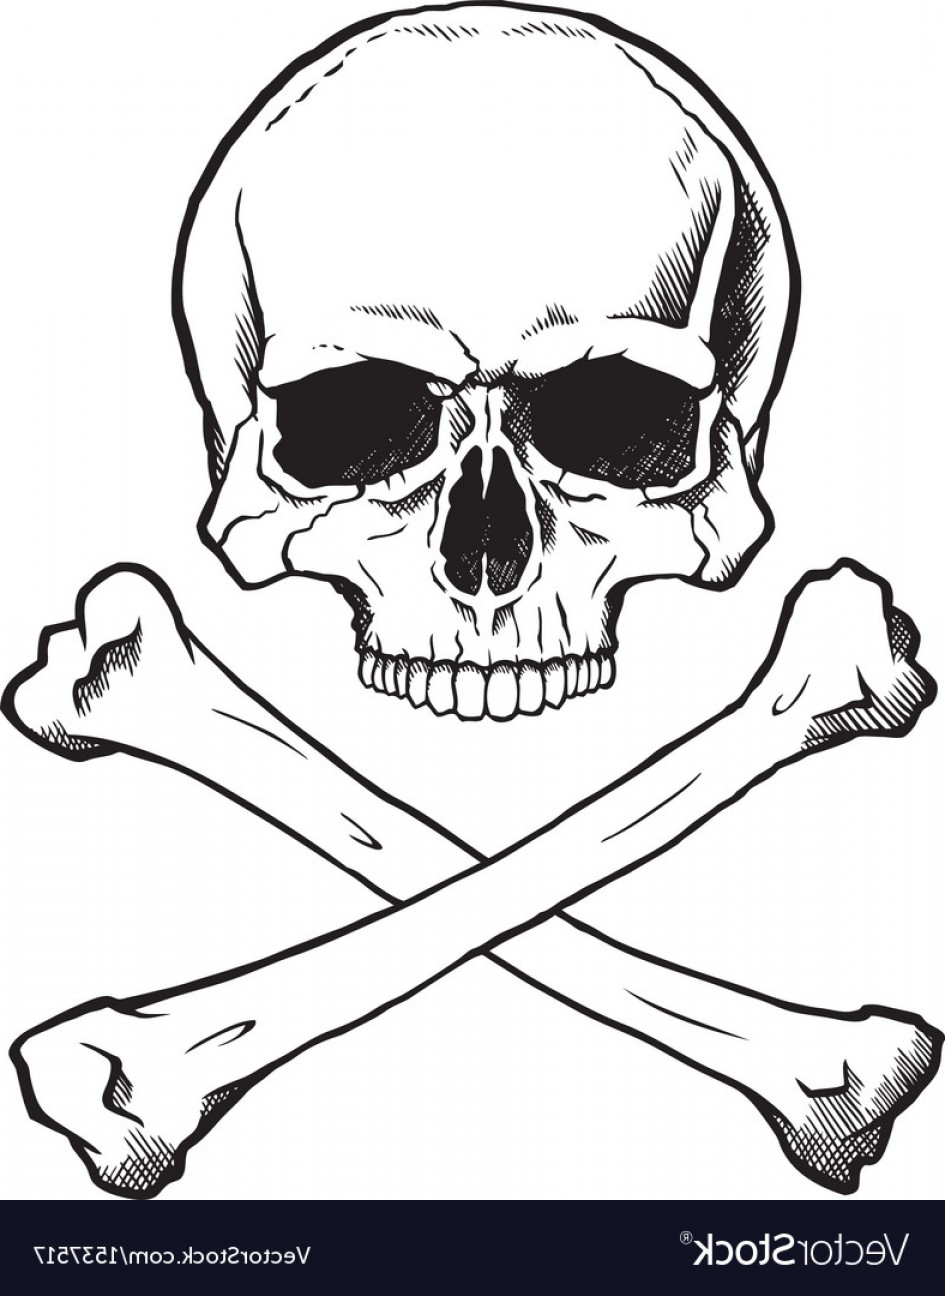 Skull ND Crossbones Vector: Blackwhite Human Skull And Crossbones Vector